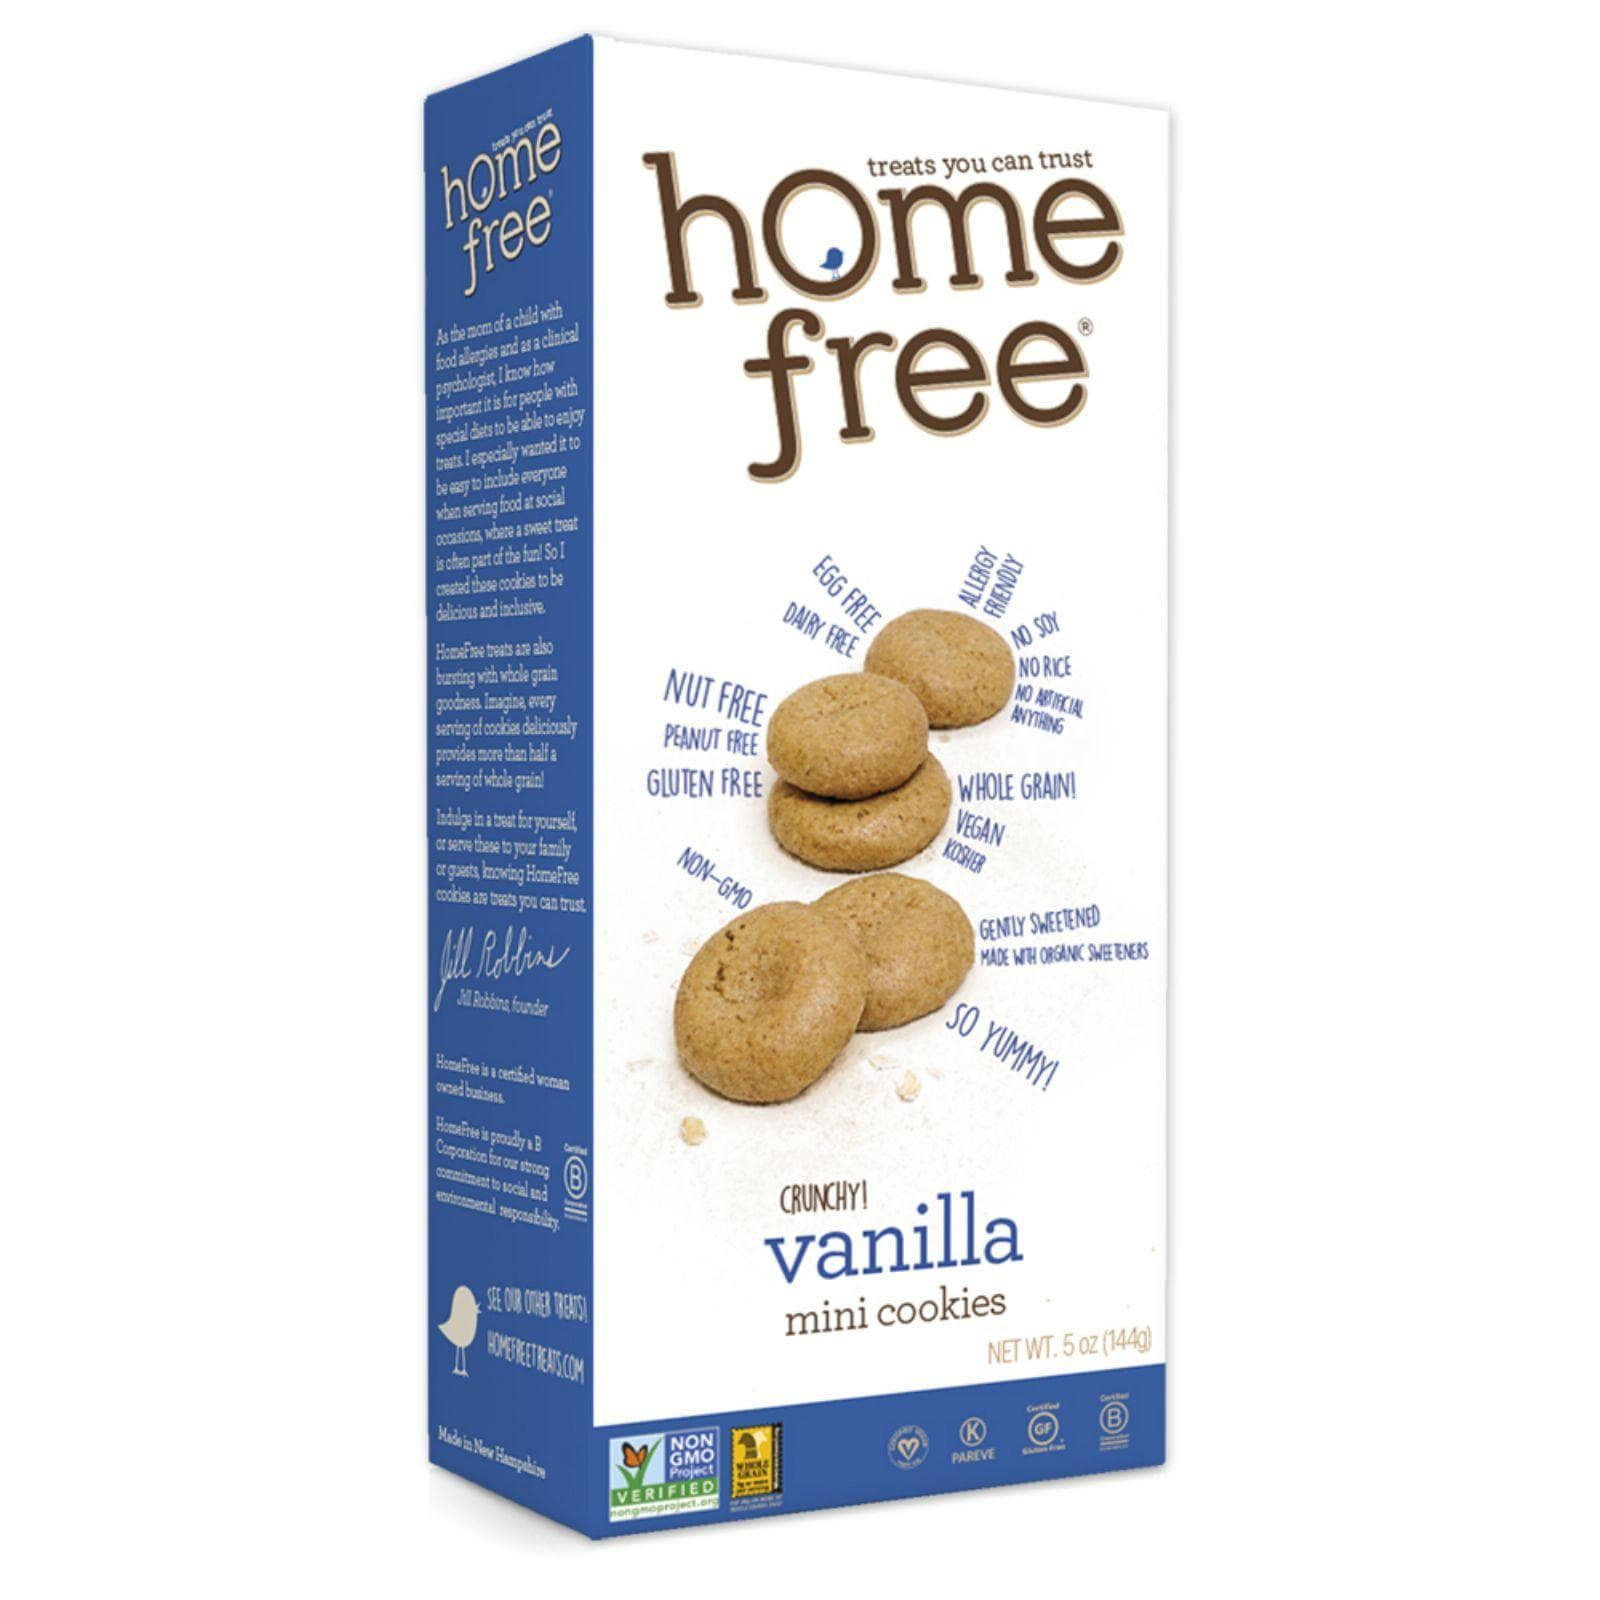 Homefree Chips, Pretzels & Popcorn Homefree Gluten Free Vanilla Mini Cookies - 5 Oz - Case Of 6